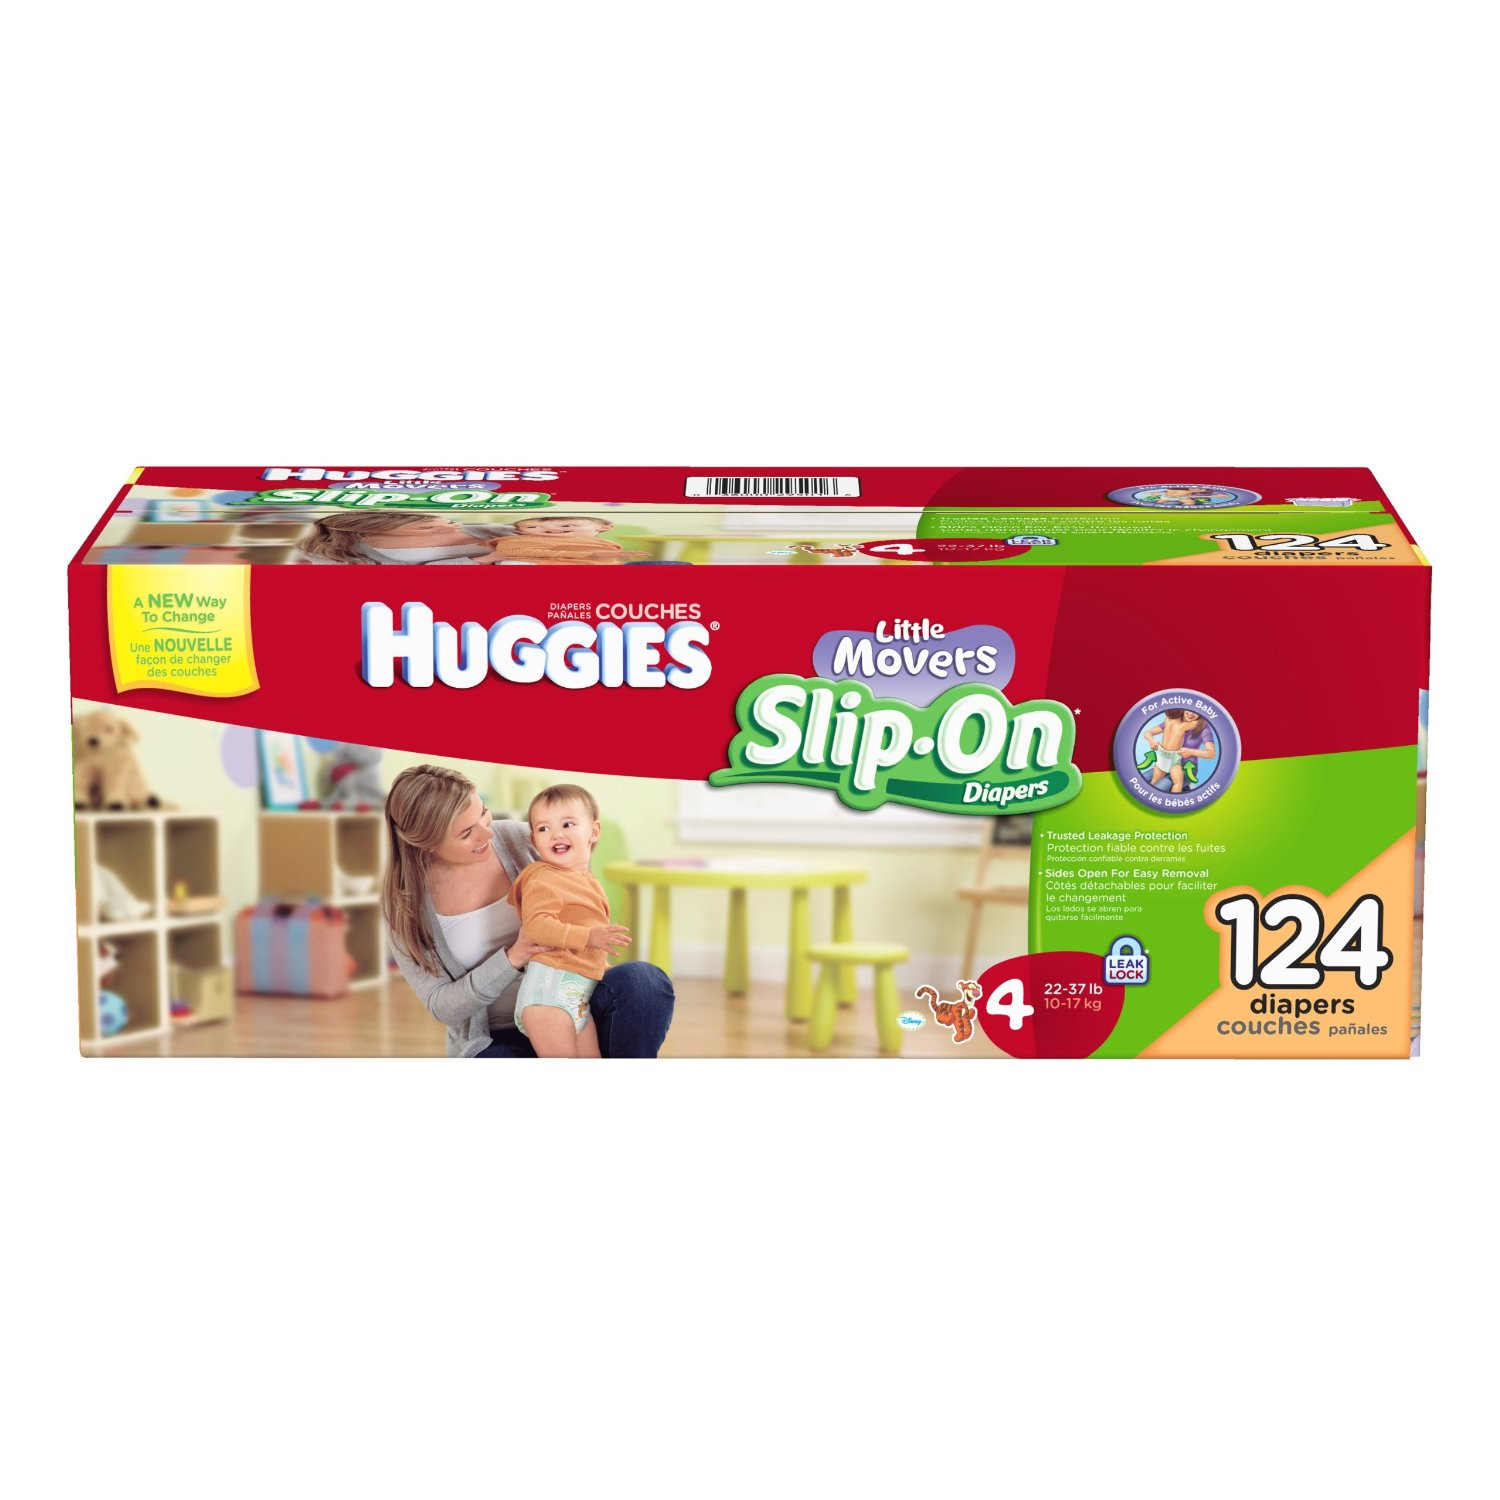 Sugar Pop Ribbons Reviews And Giveaways Huggies Little